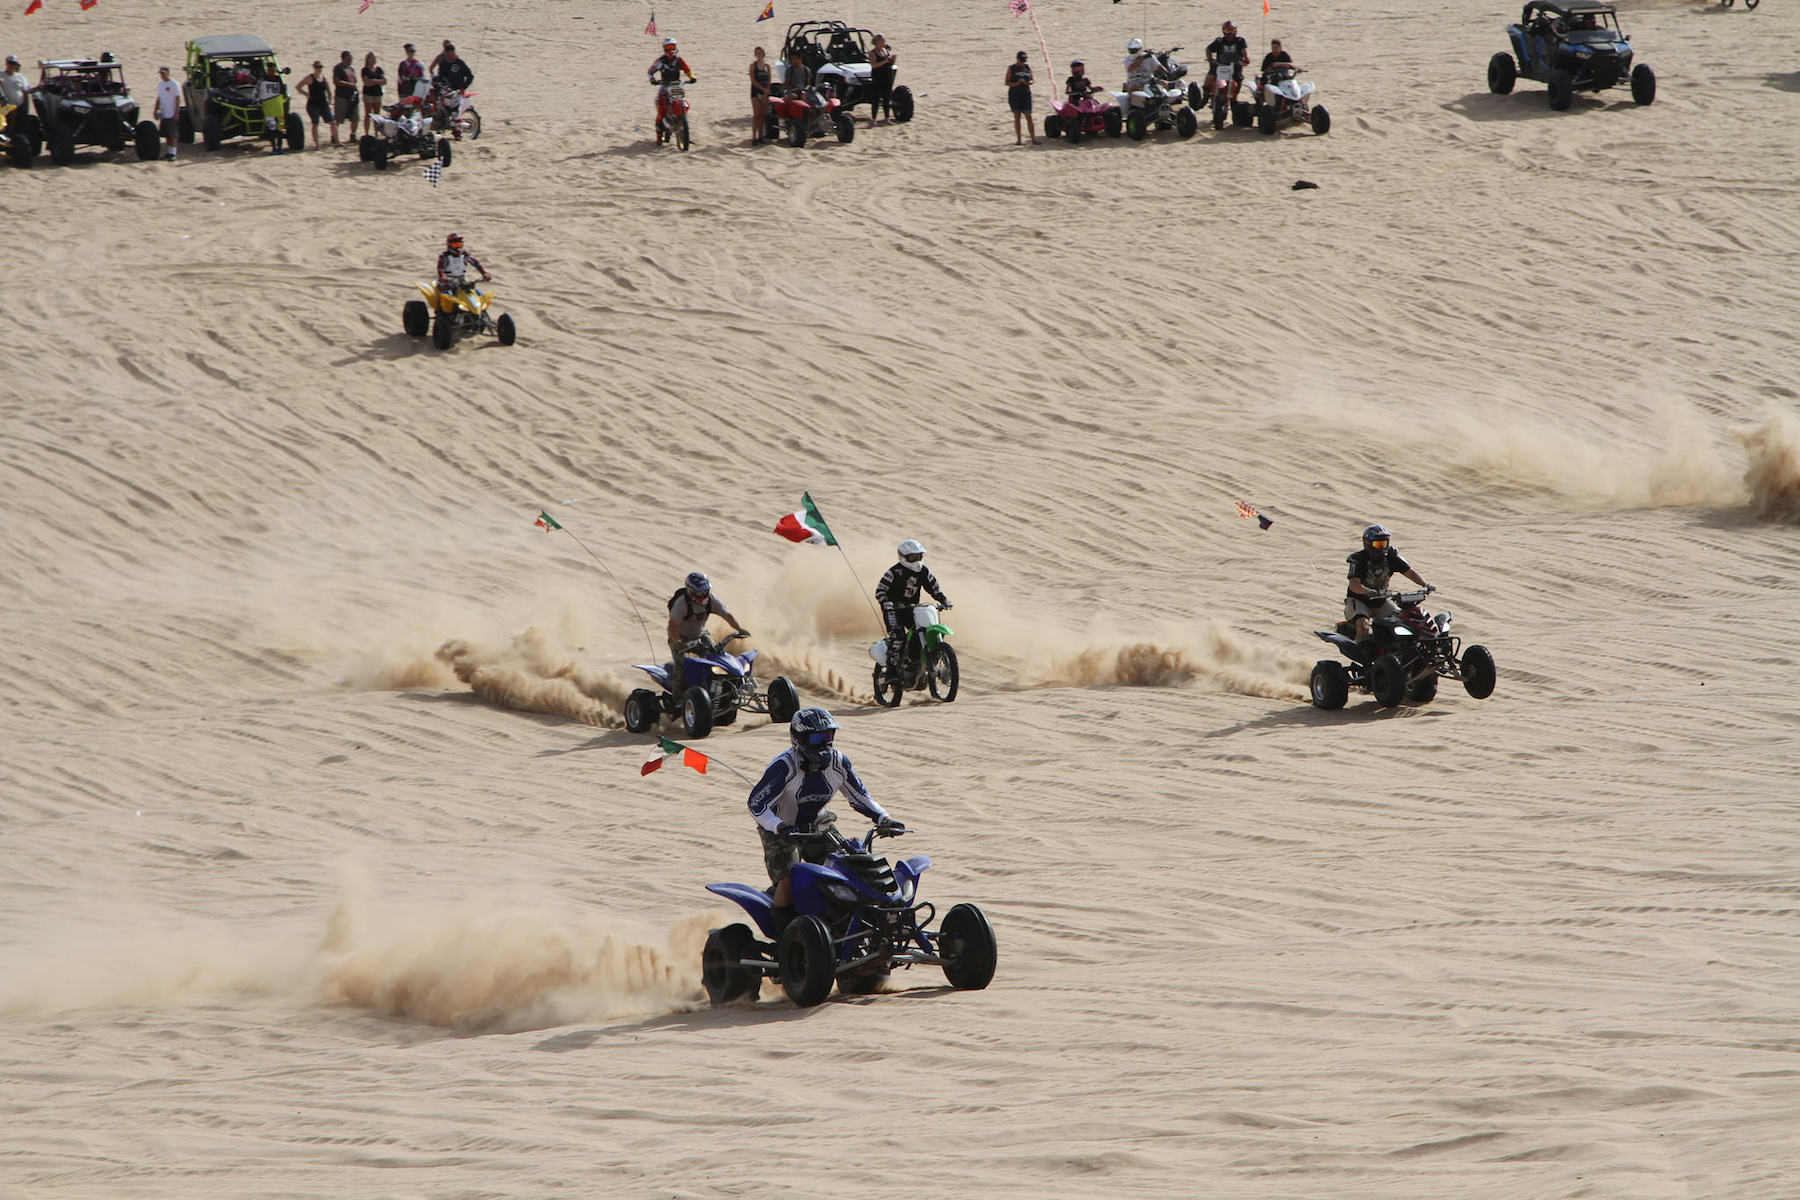 Off-road vehicle recreation areas favored over renewables under DRECP. Imperial Sand Dunes Recreation Area